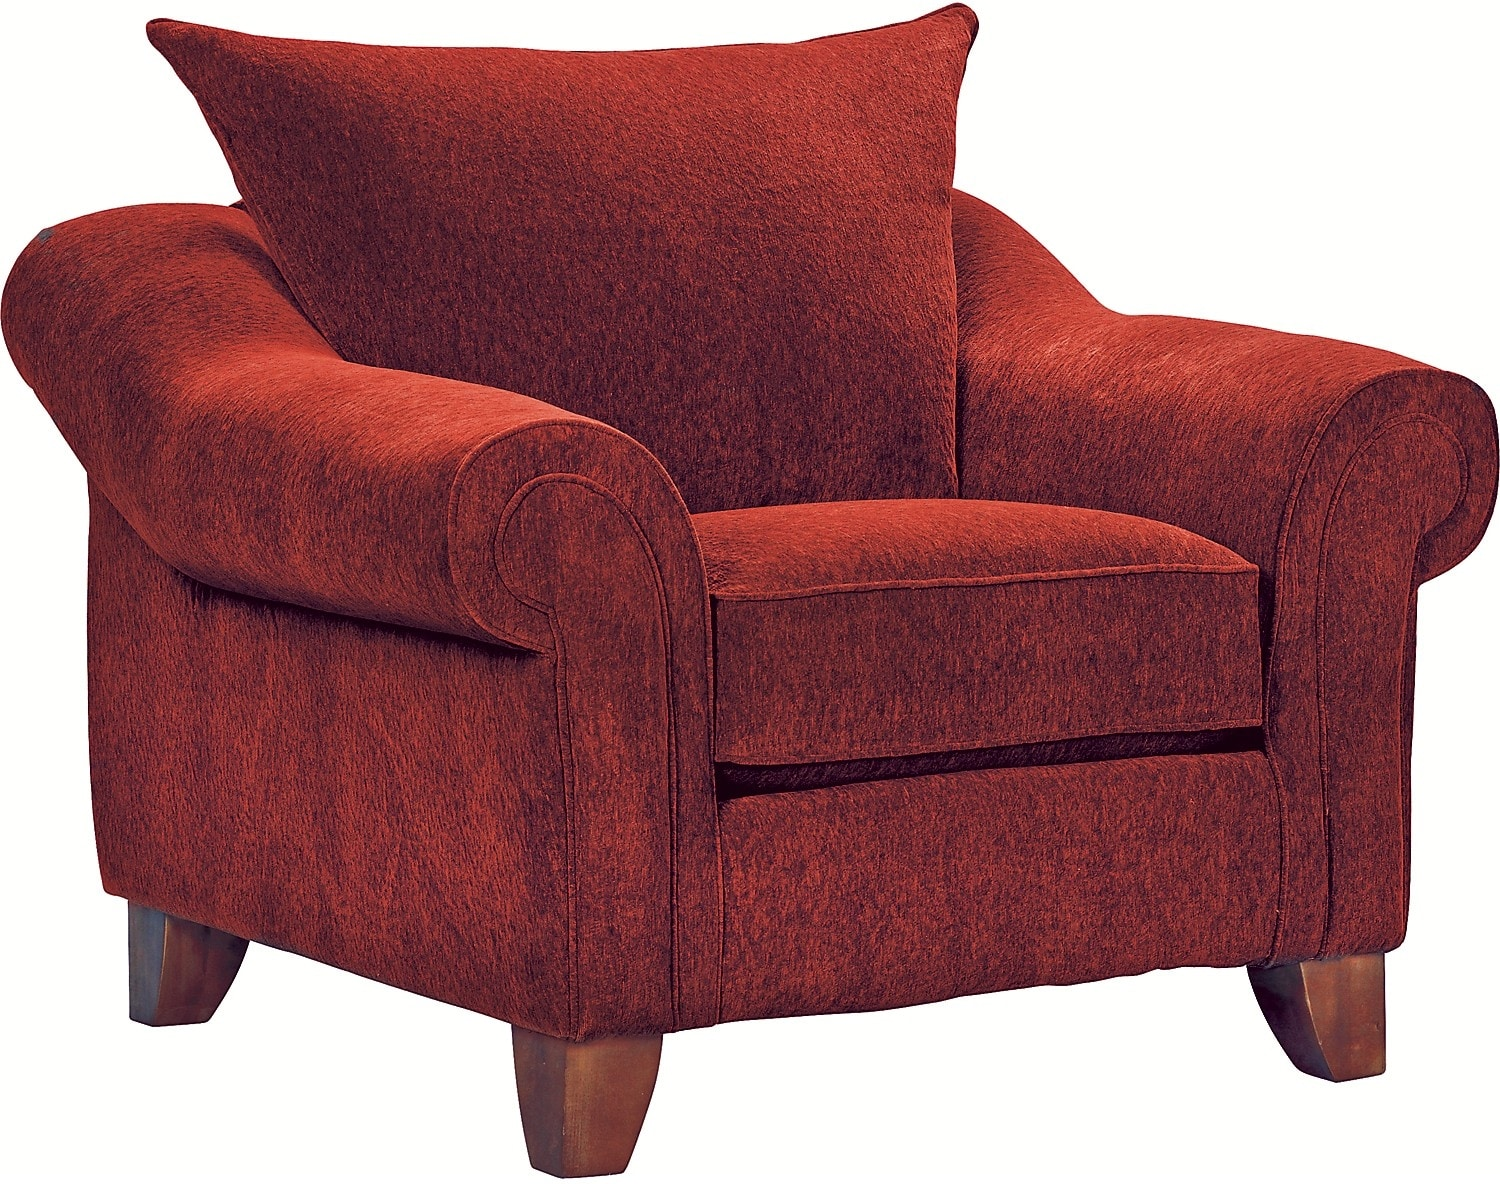 Reese Chenille Chair Red The Brick